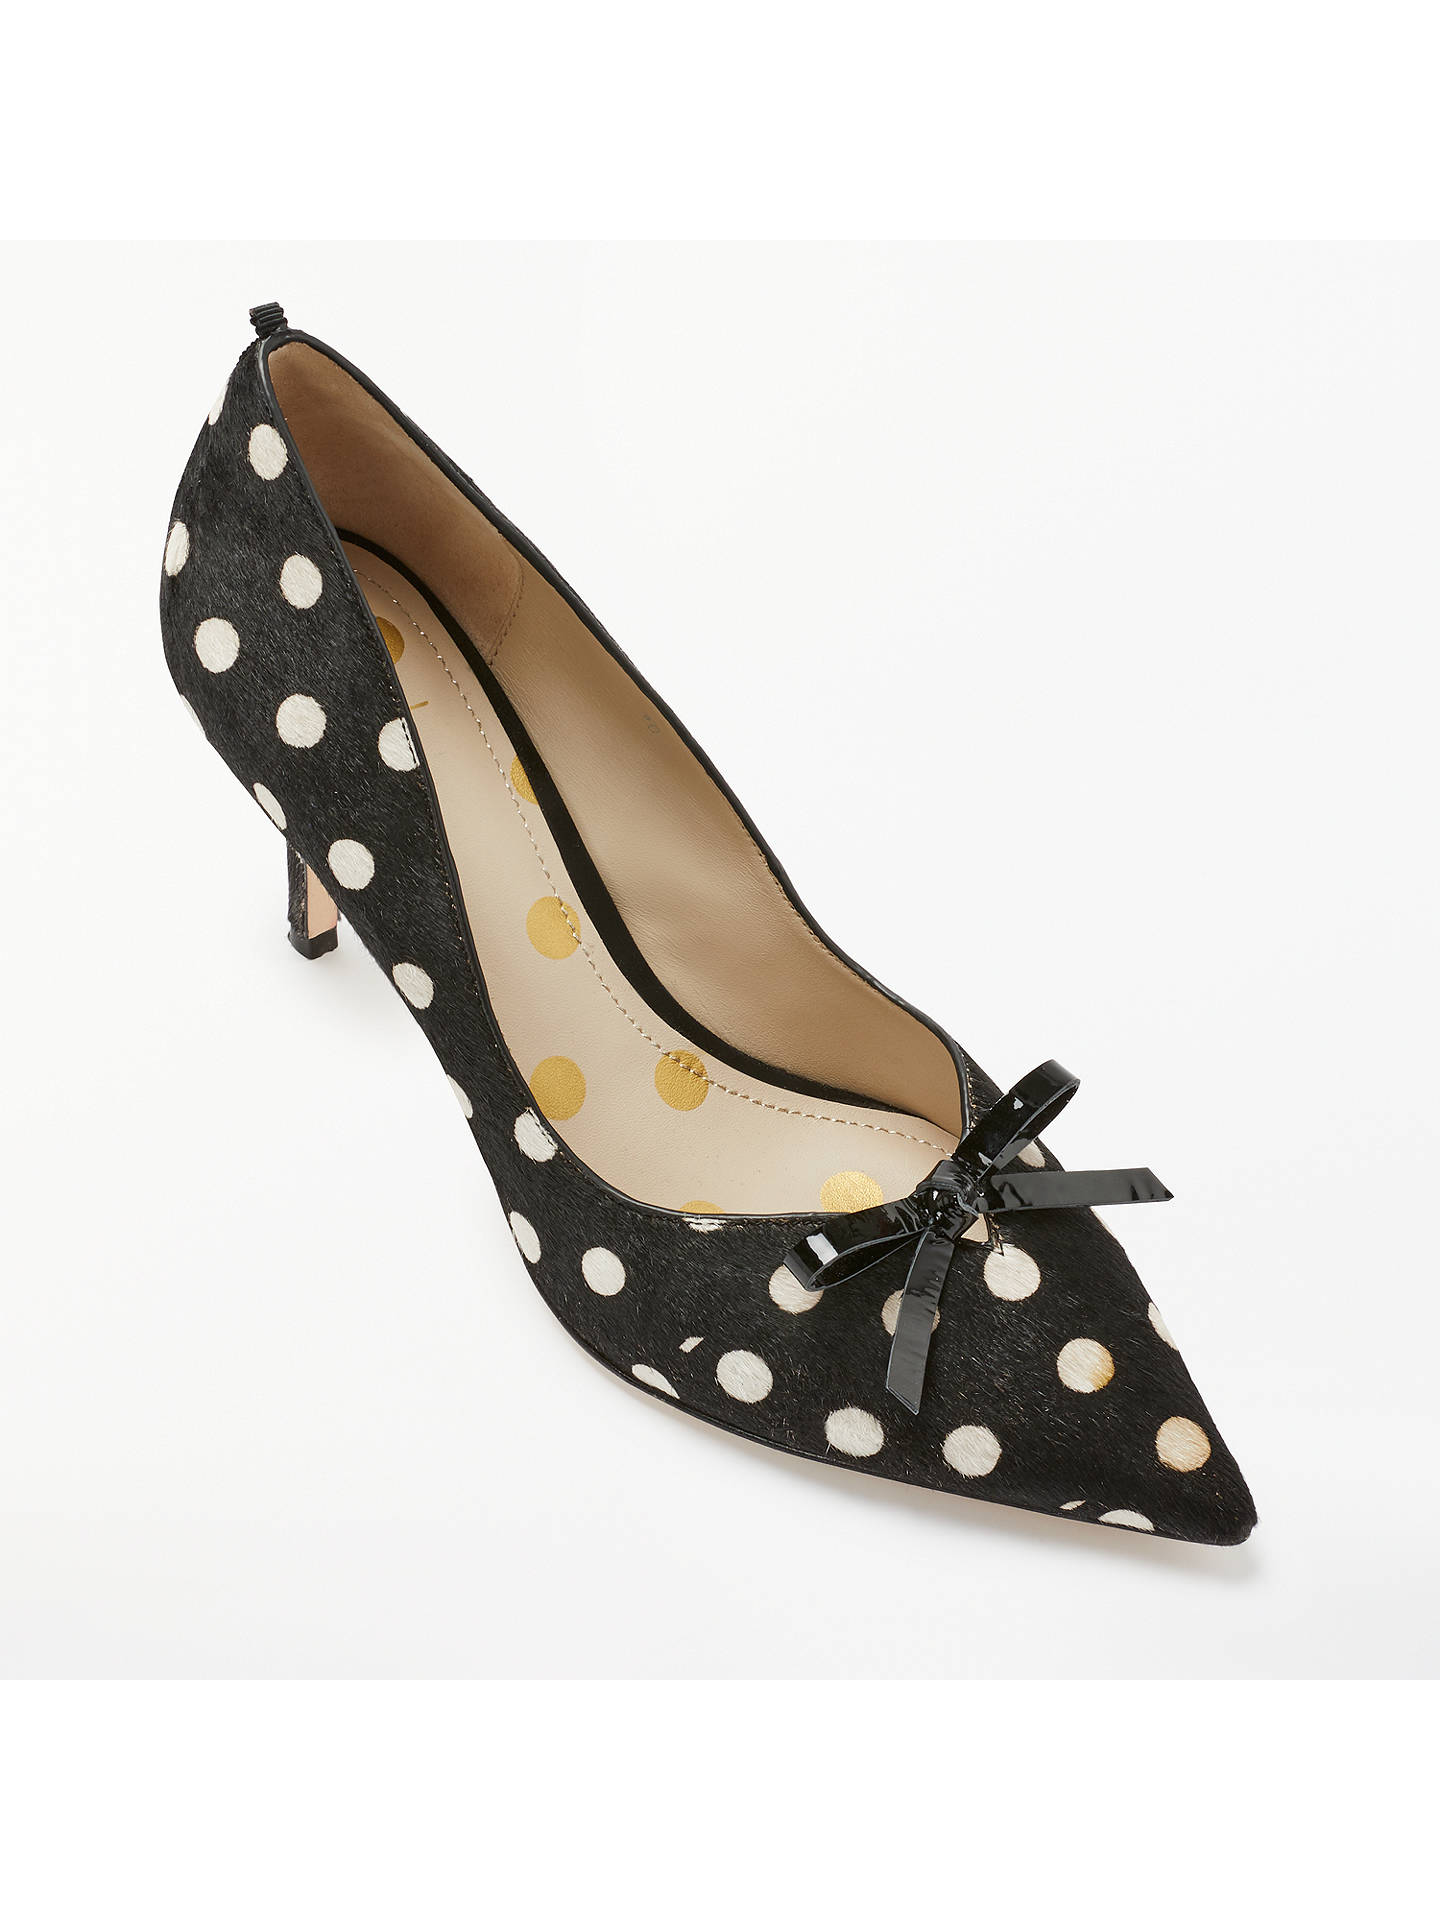 BuyBoden Eleanor Spotted Bow Court Shoes, Black/White Leather, 4 Online at johnlewis.com